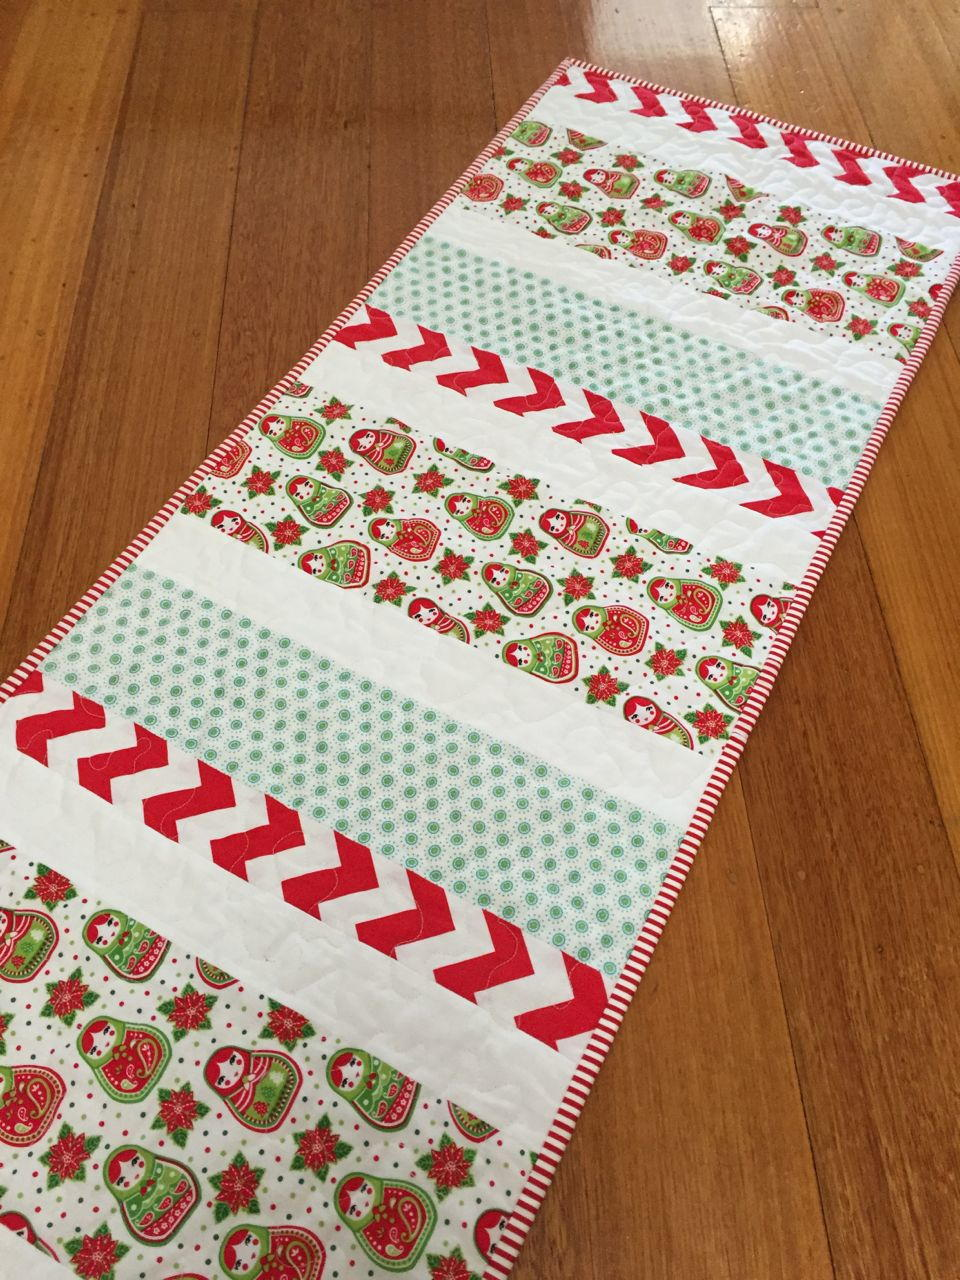 Candy Cane Christmas Table Runner FaveQuiltscom